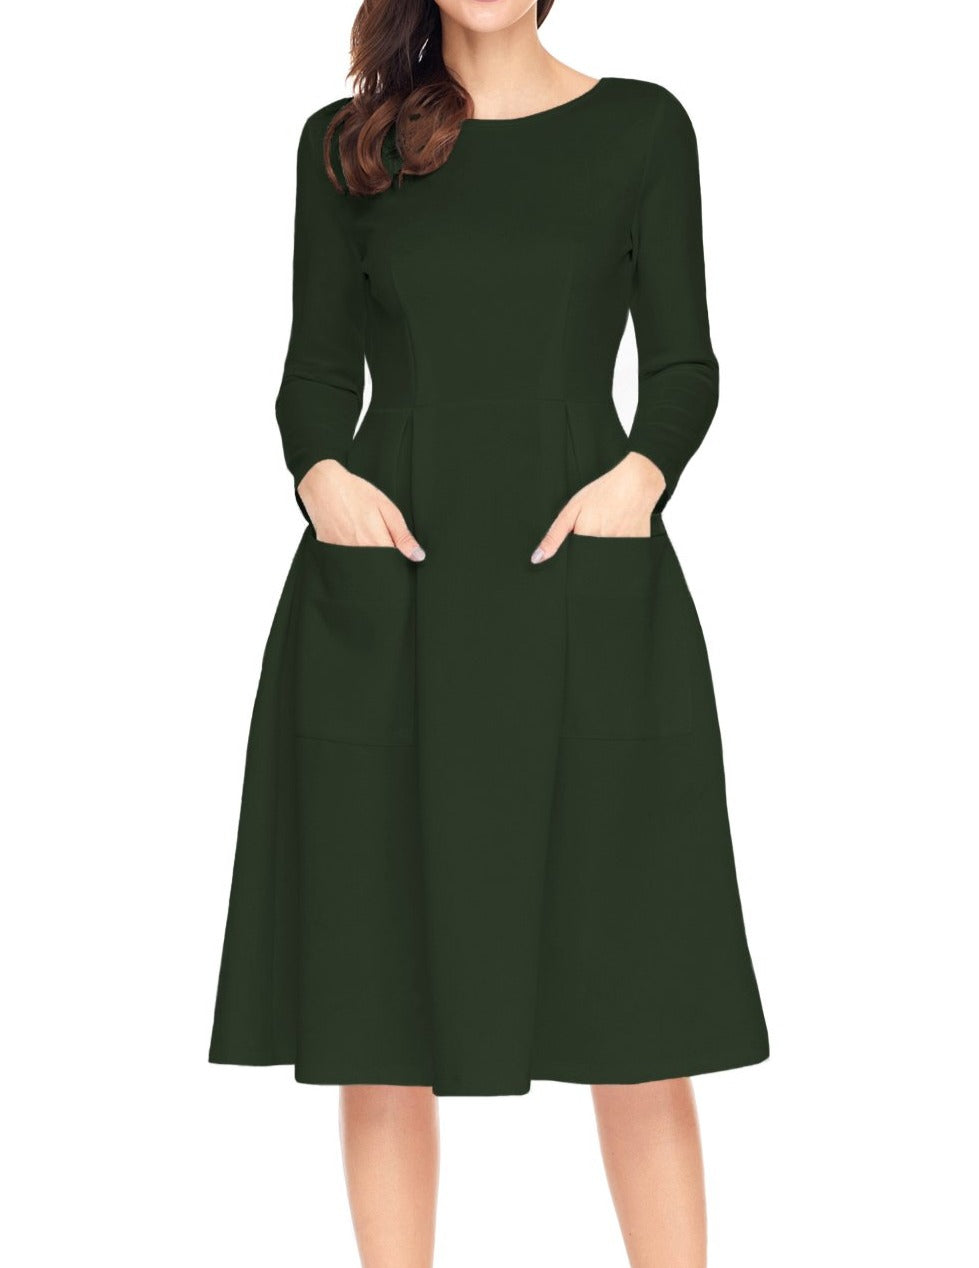 Green Bateau Collar Casual Big Pocket Skater Dress